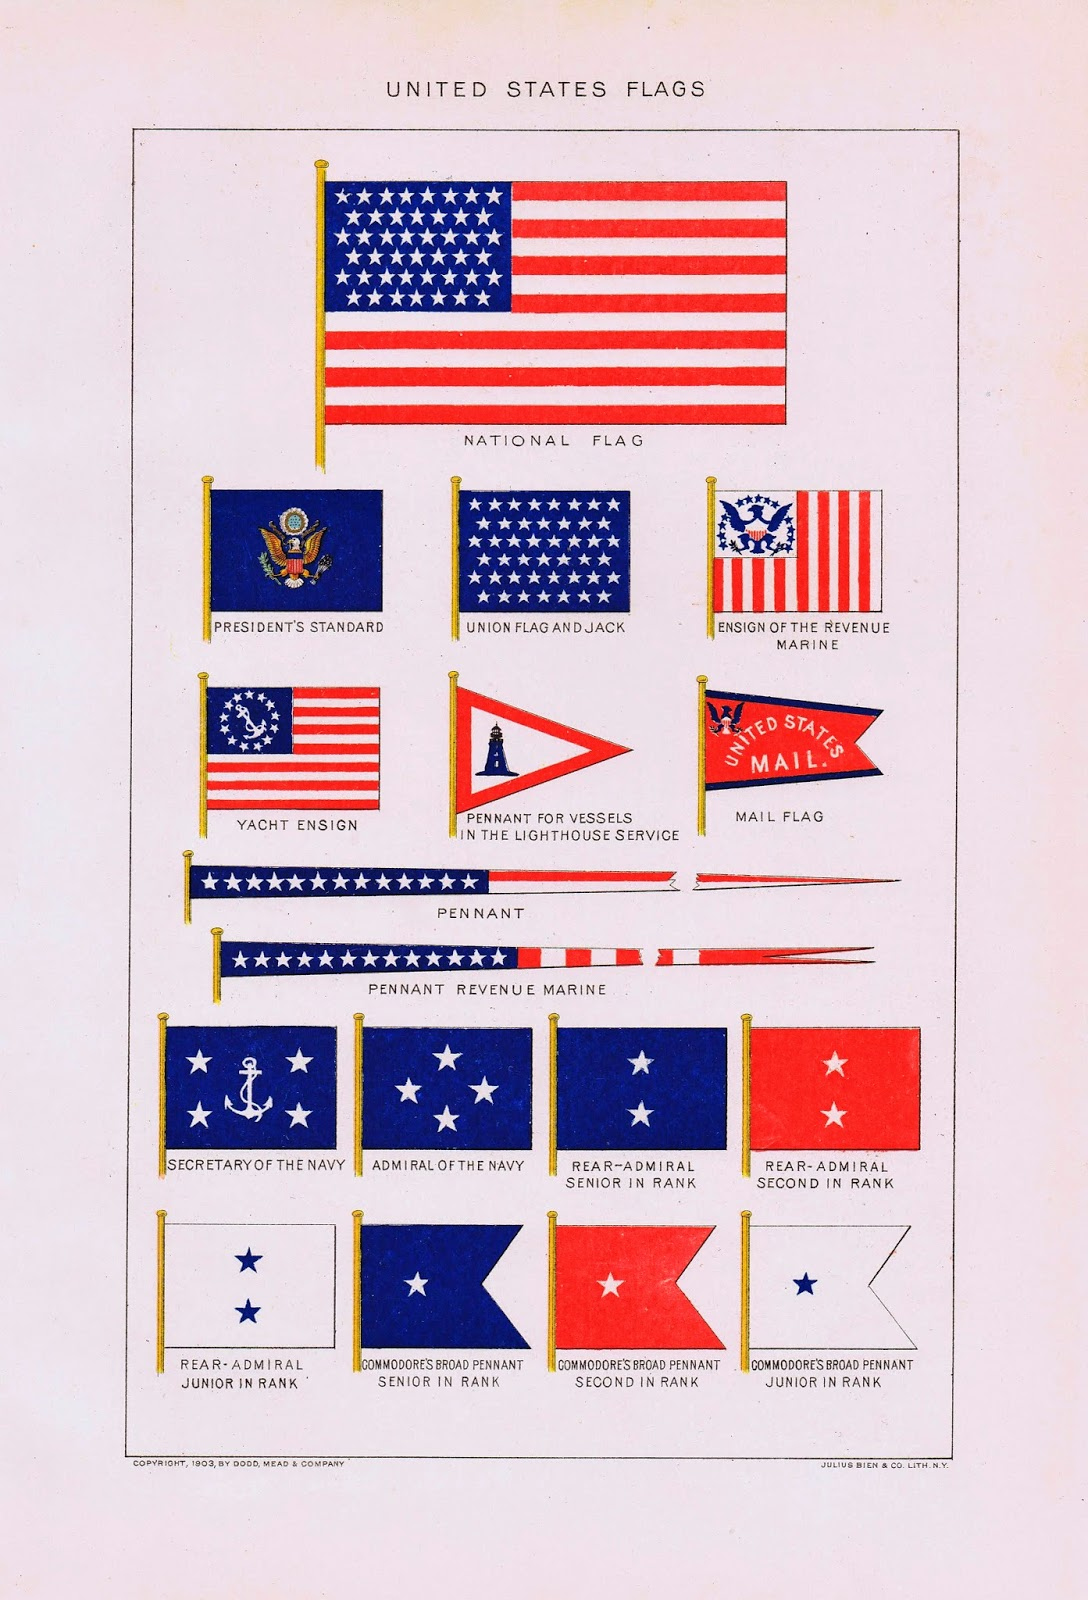 photo relating to United States Flags Printable identified as United Says Flags Printable Knick of Period